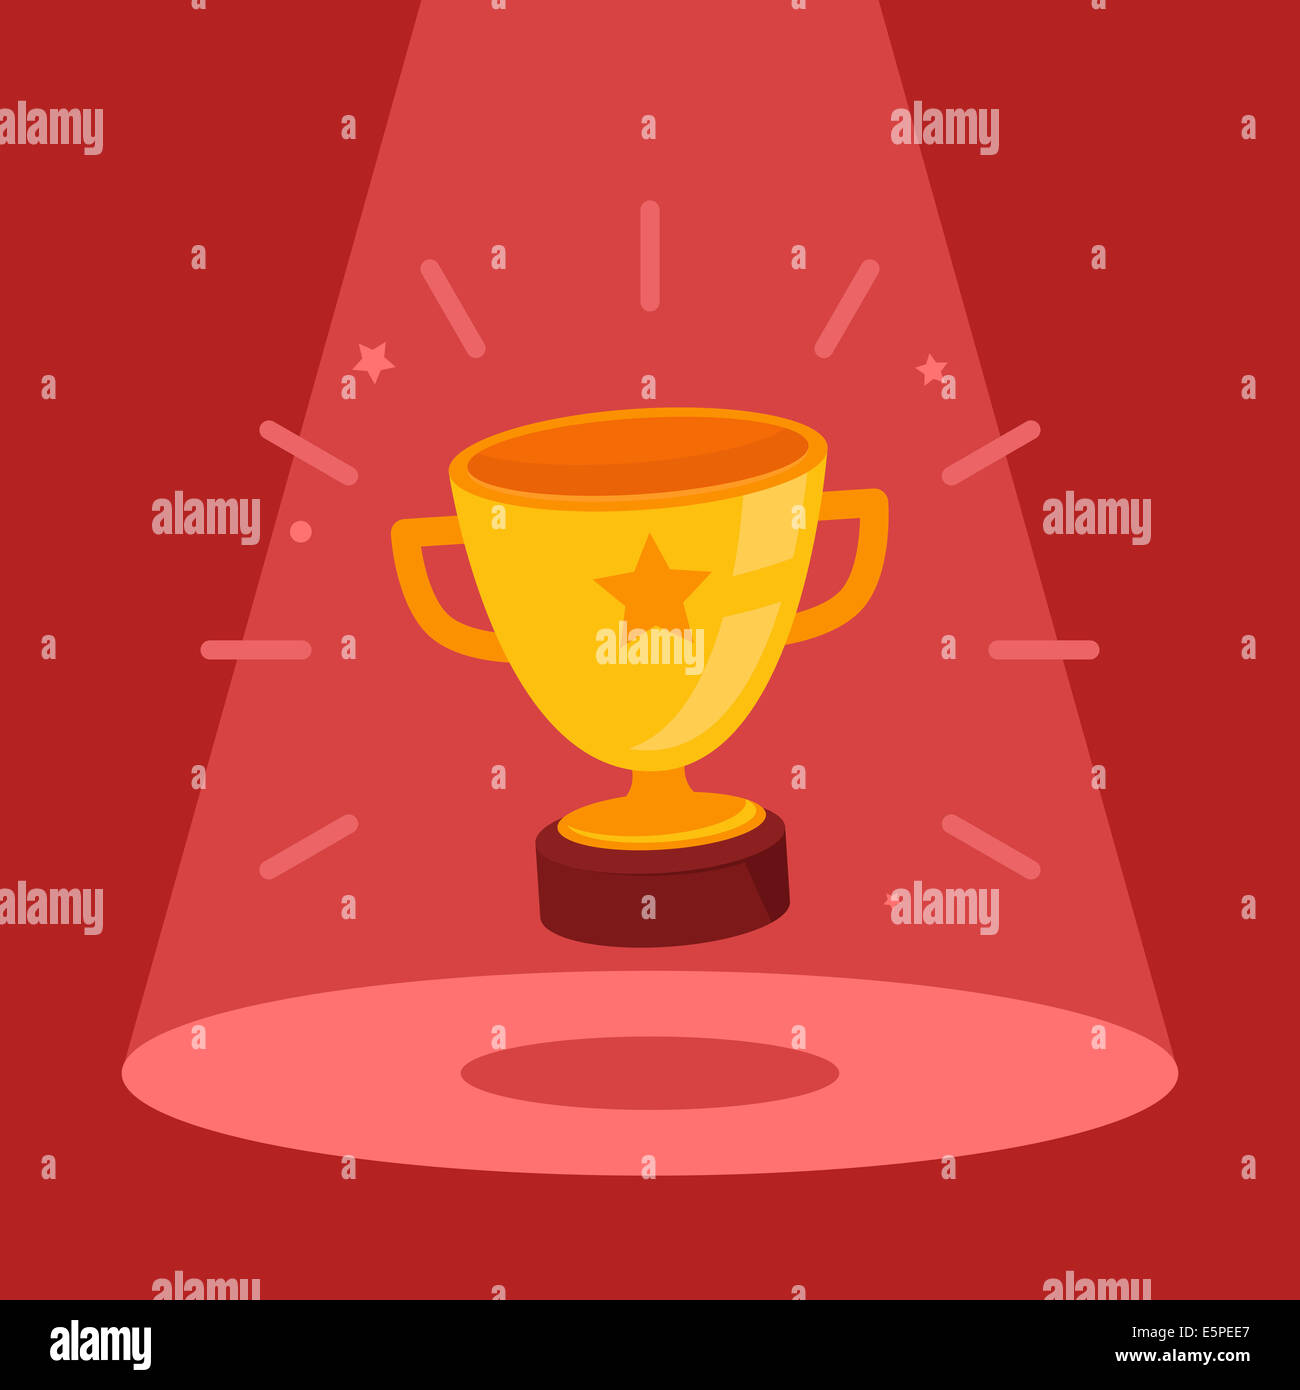 Victory concept - flat bowl icon in the spotlight - Stock Image